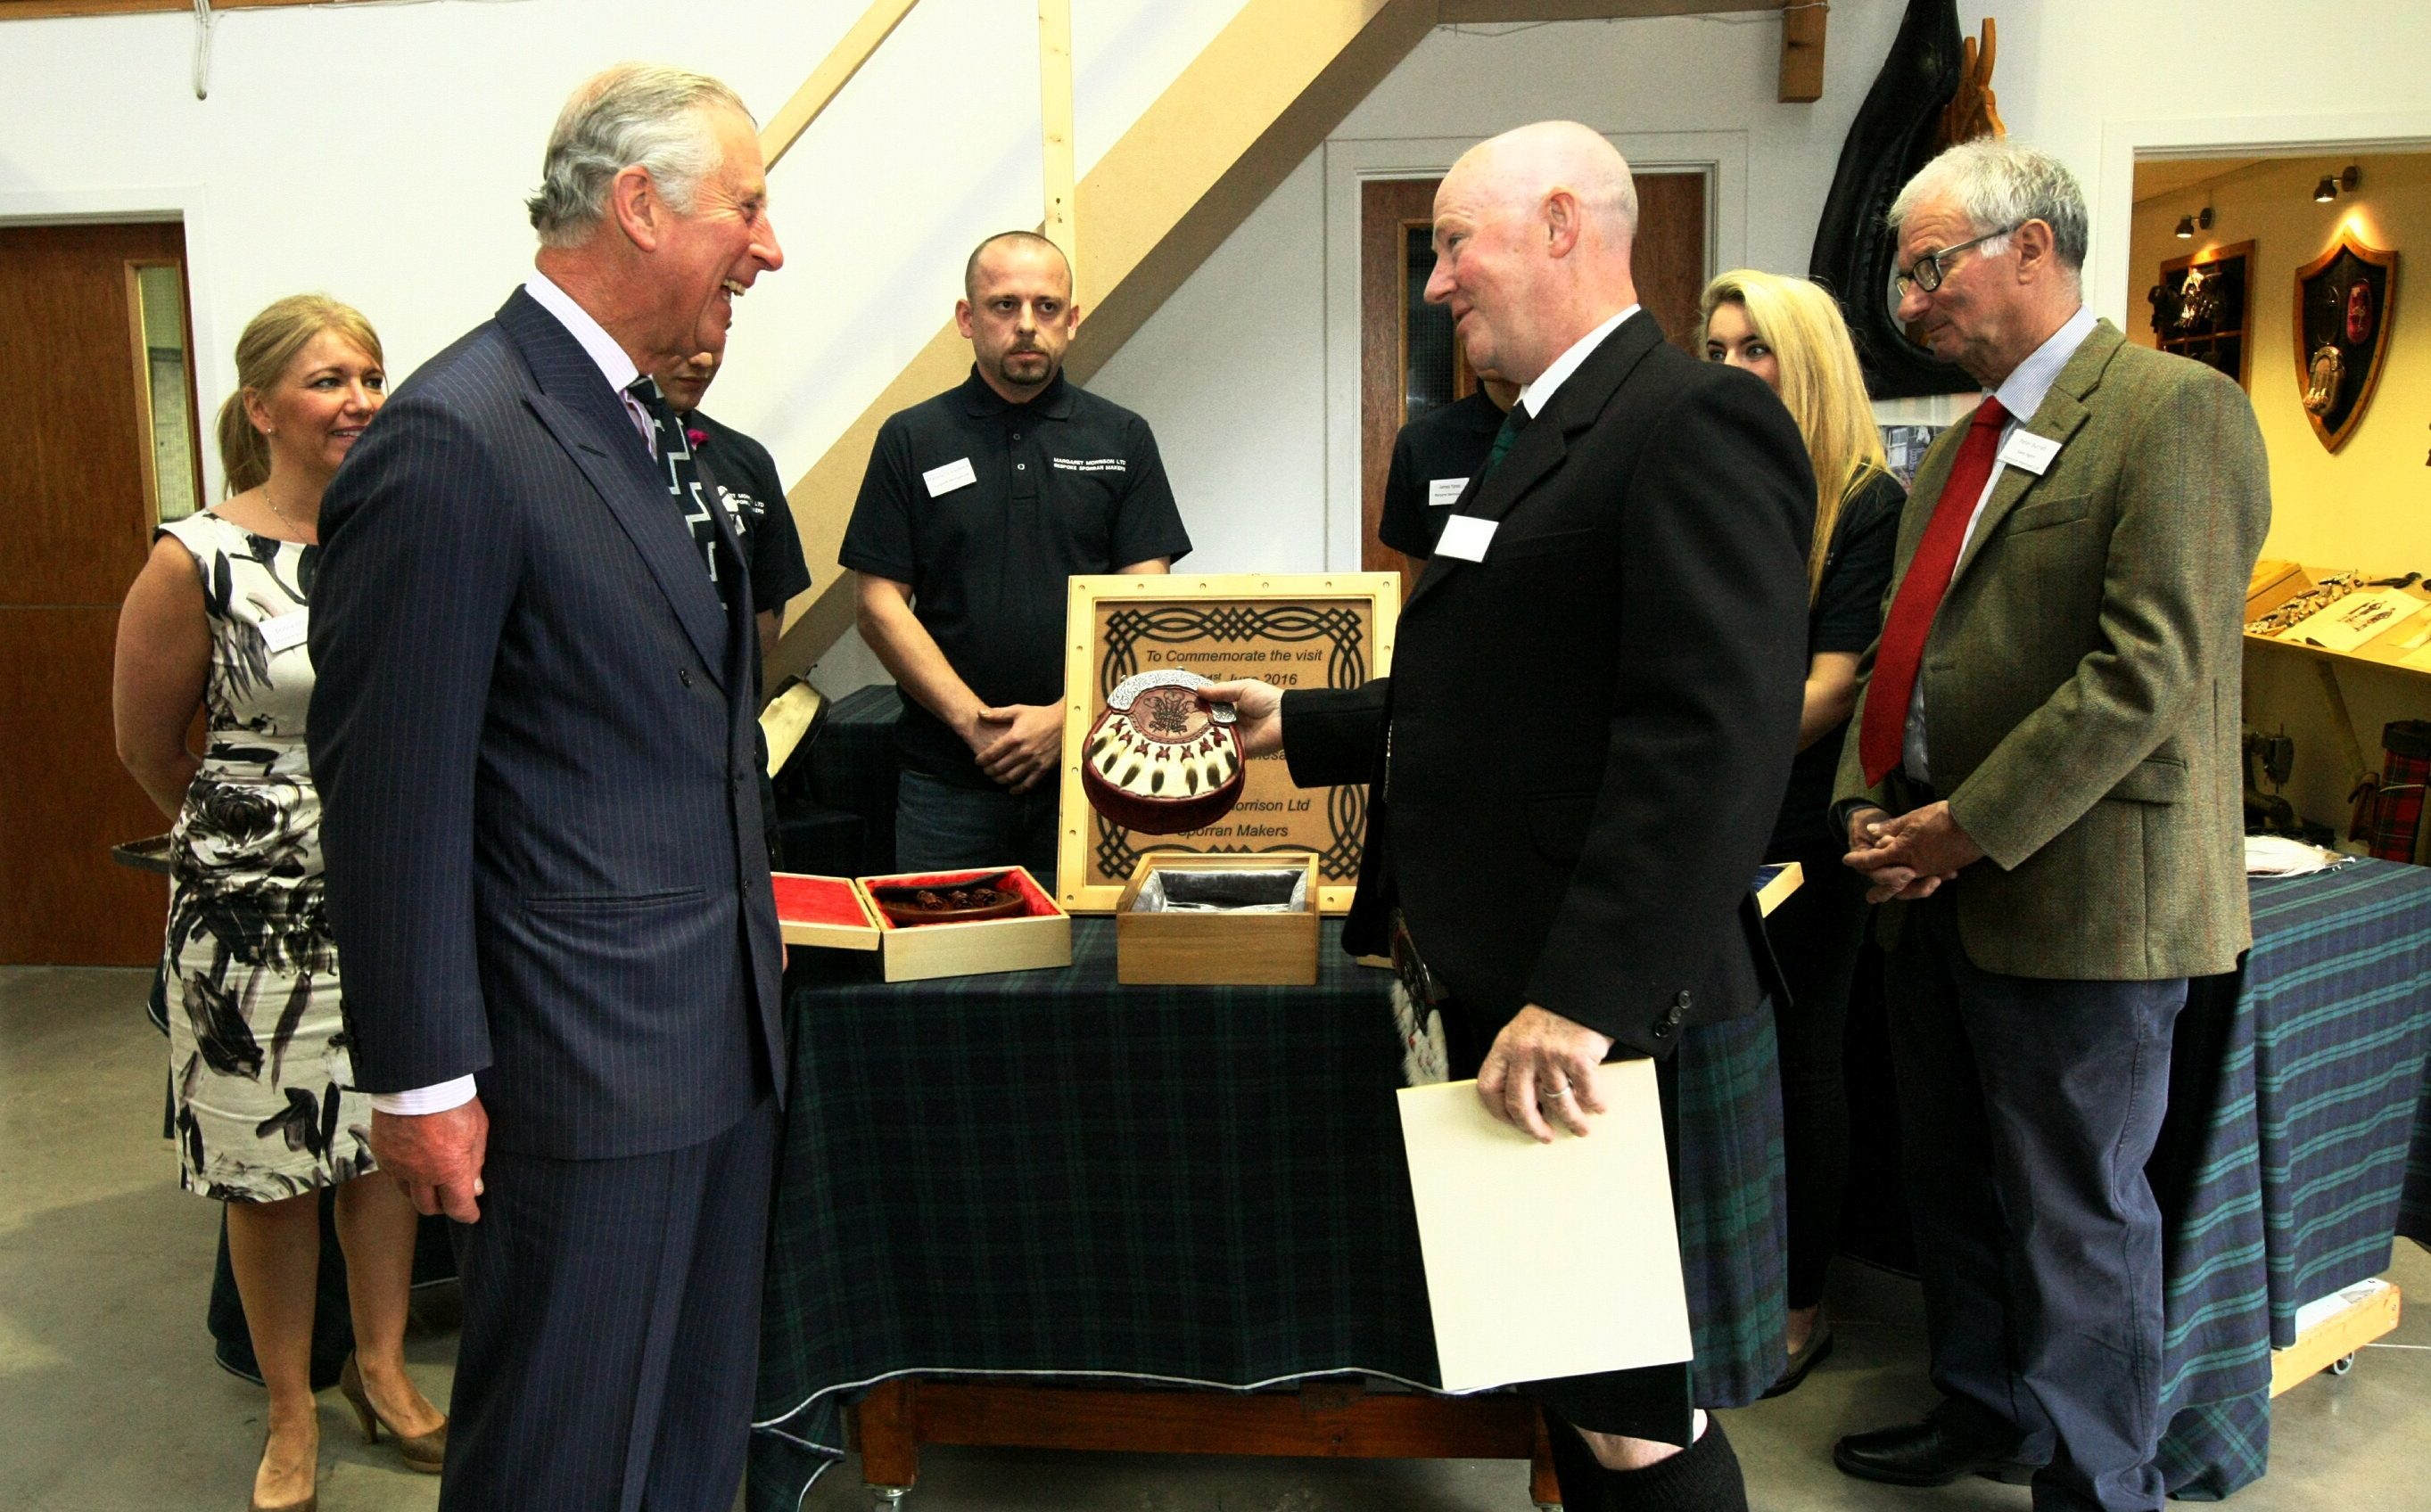 Director Greg Whyte presenting Prince Charles with sporrans.